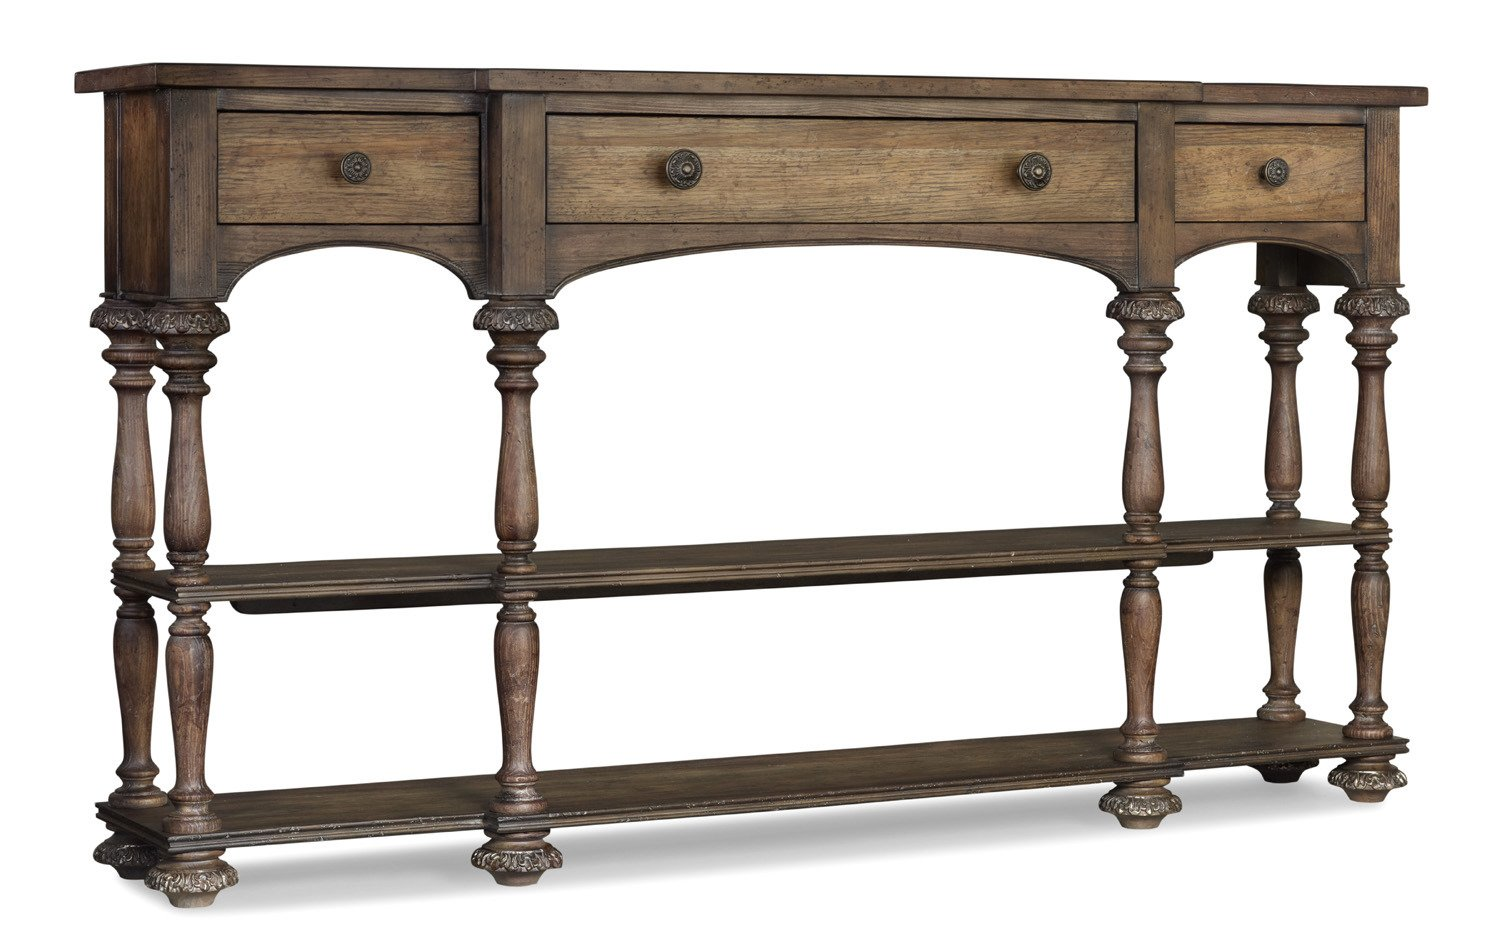 Attractive Amazon.com: Hooker Furniture Rhapsody Thin Console Table In Rustic Walnut:  Kitchen U0026 Dining